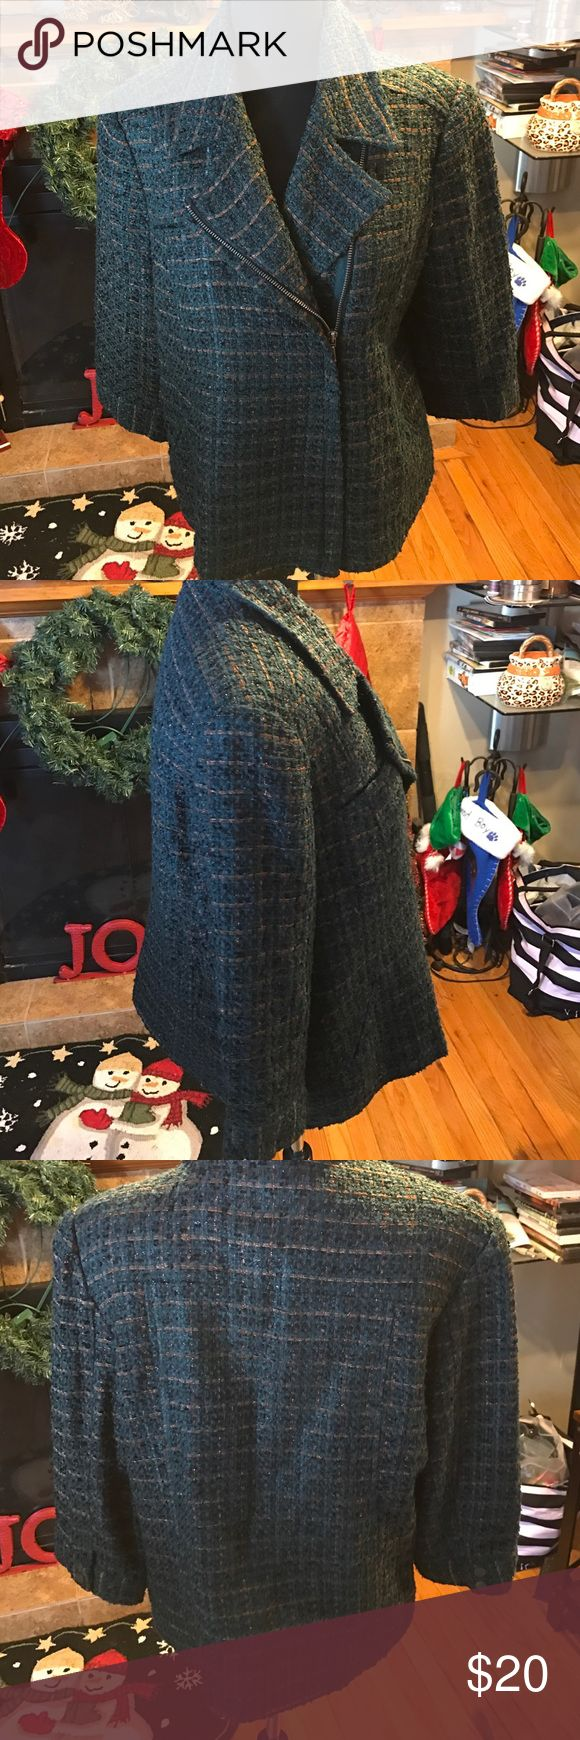 Coldwater Creek moto jacket Coldwater Creek moto jacket. Jacket on perfect condition maybe wore once Coldwater Creek Jackets & Coats Blazers